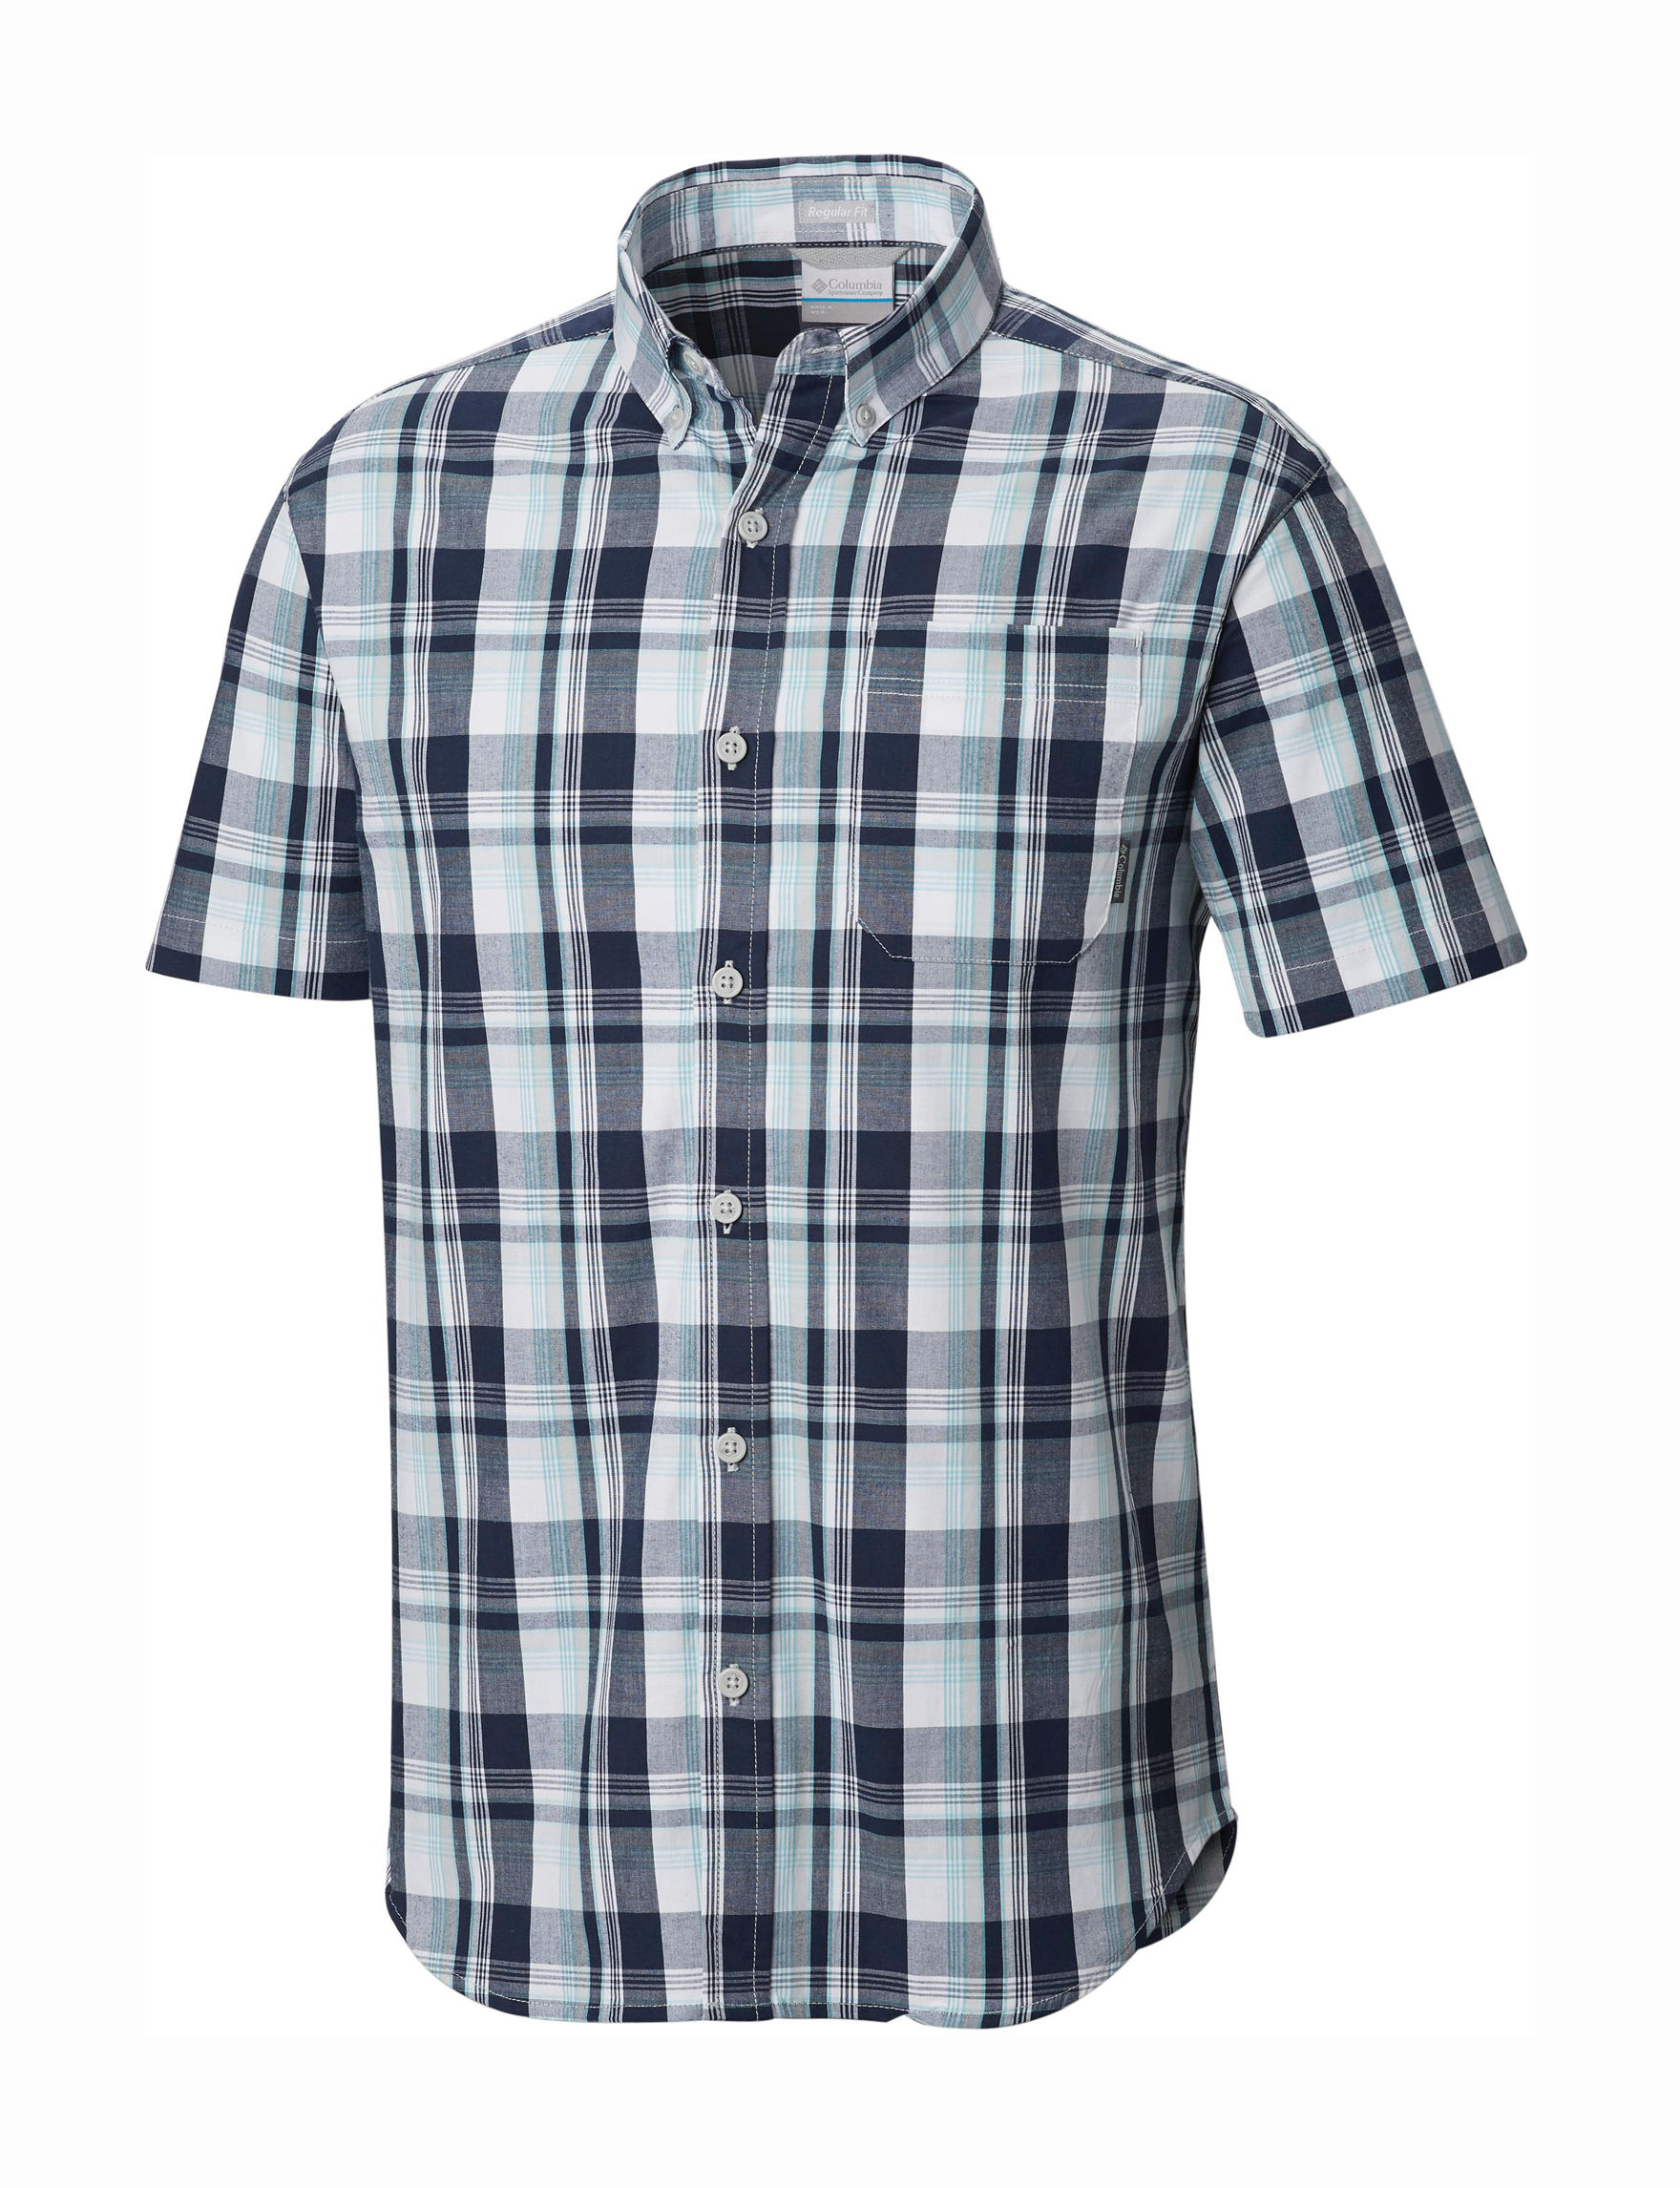 Columbia Grey Plaid Casual Button Down Shirts